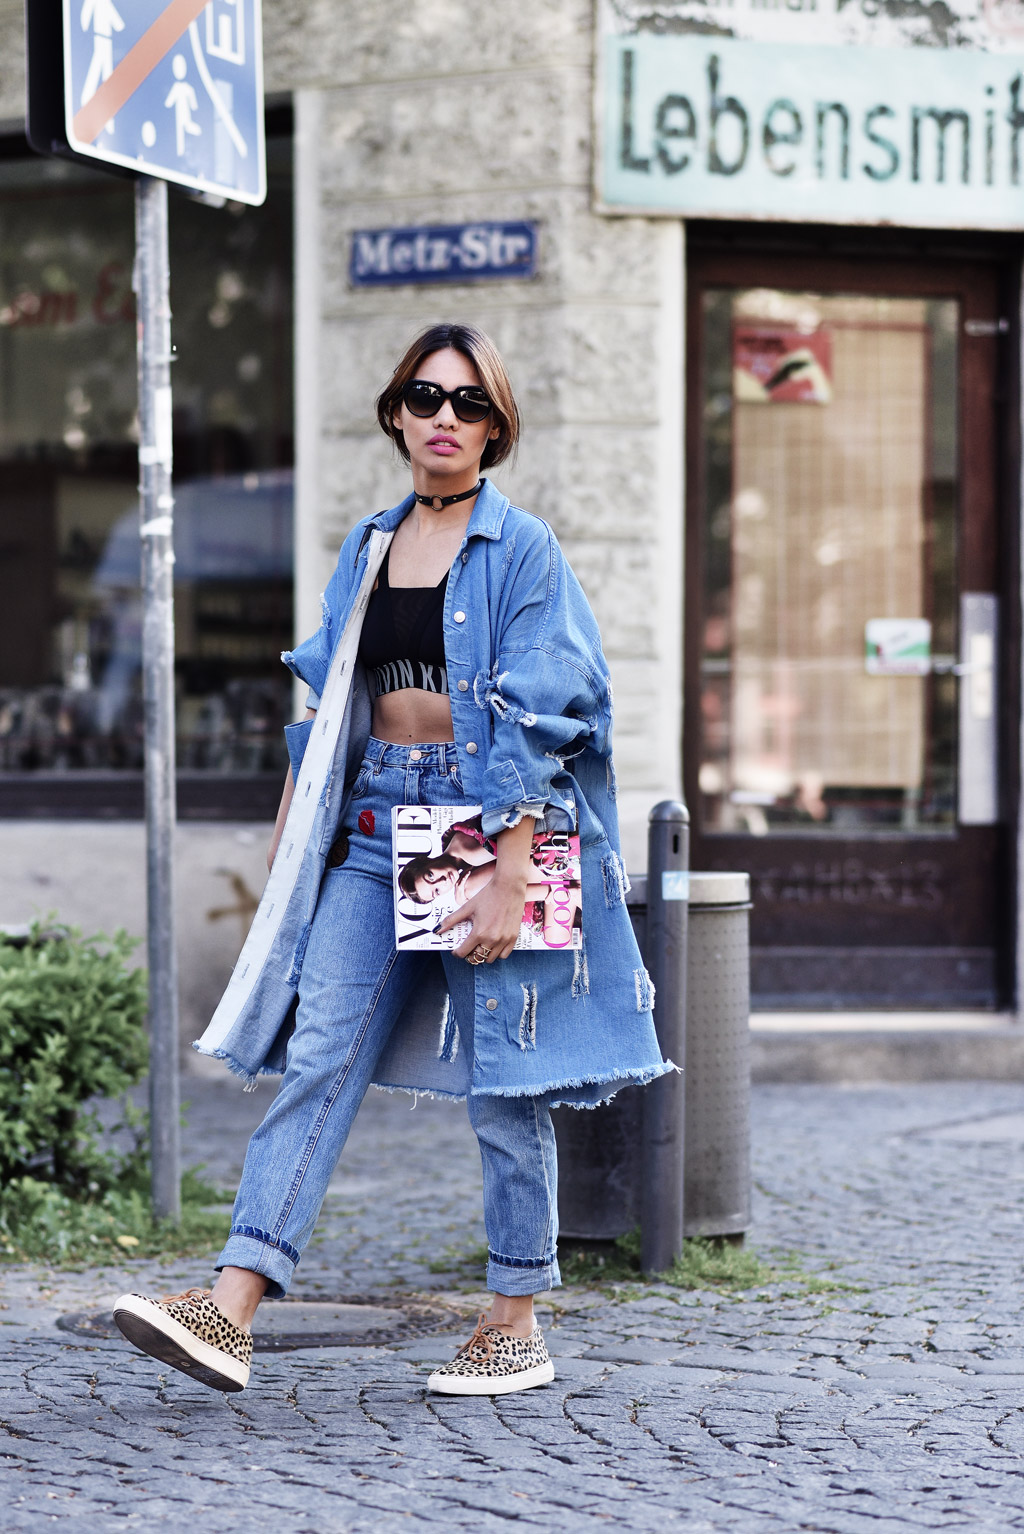 thefashionanarchy_munich_muenchen_blogger_fashionblogger_modeblogger_styleblogger_beautyblogger_denim_cutout_mantel_coat_patches_mom_jeans_mcm_outfit_5